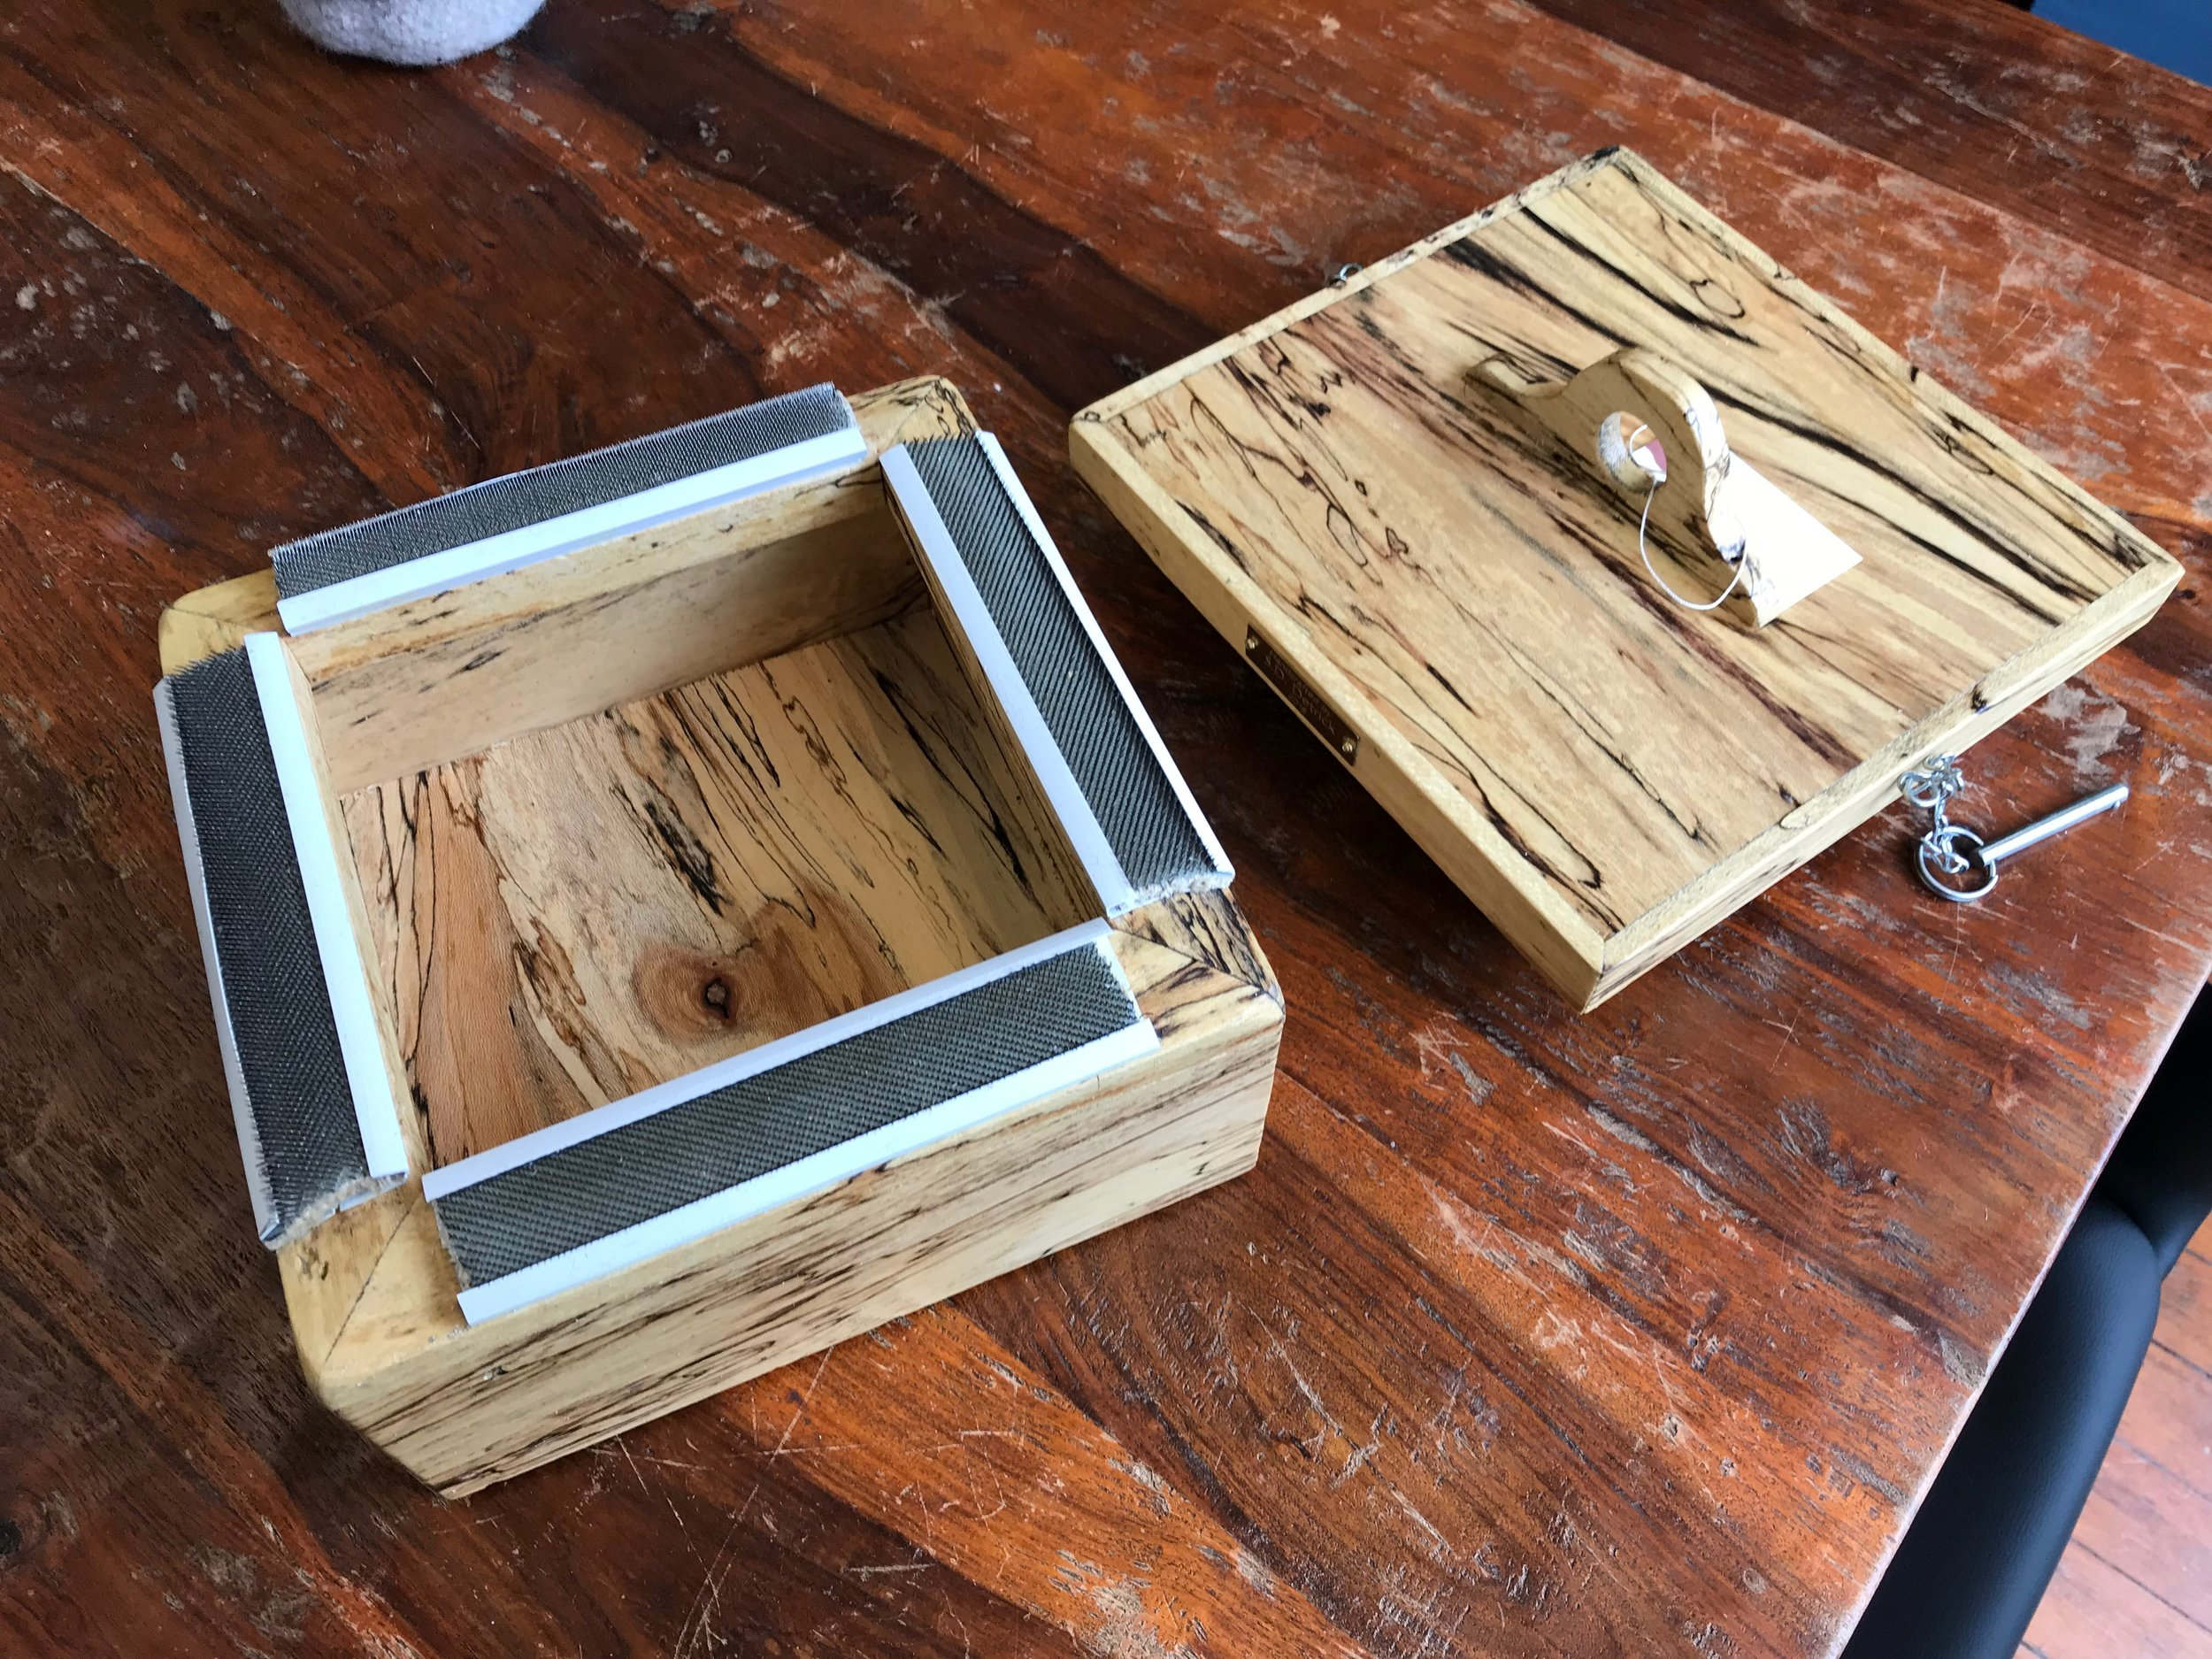 Punch Needle Frame Box Now Here! - You'll love this super handy little box that will store your needle punch supplies and provide your frame as well. So handy to tote to your next hook-in! Handcrafted in Ohio, we have walnut and spaulted maple. $150-get yours today!